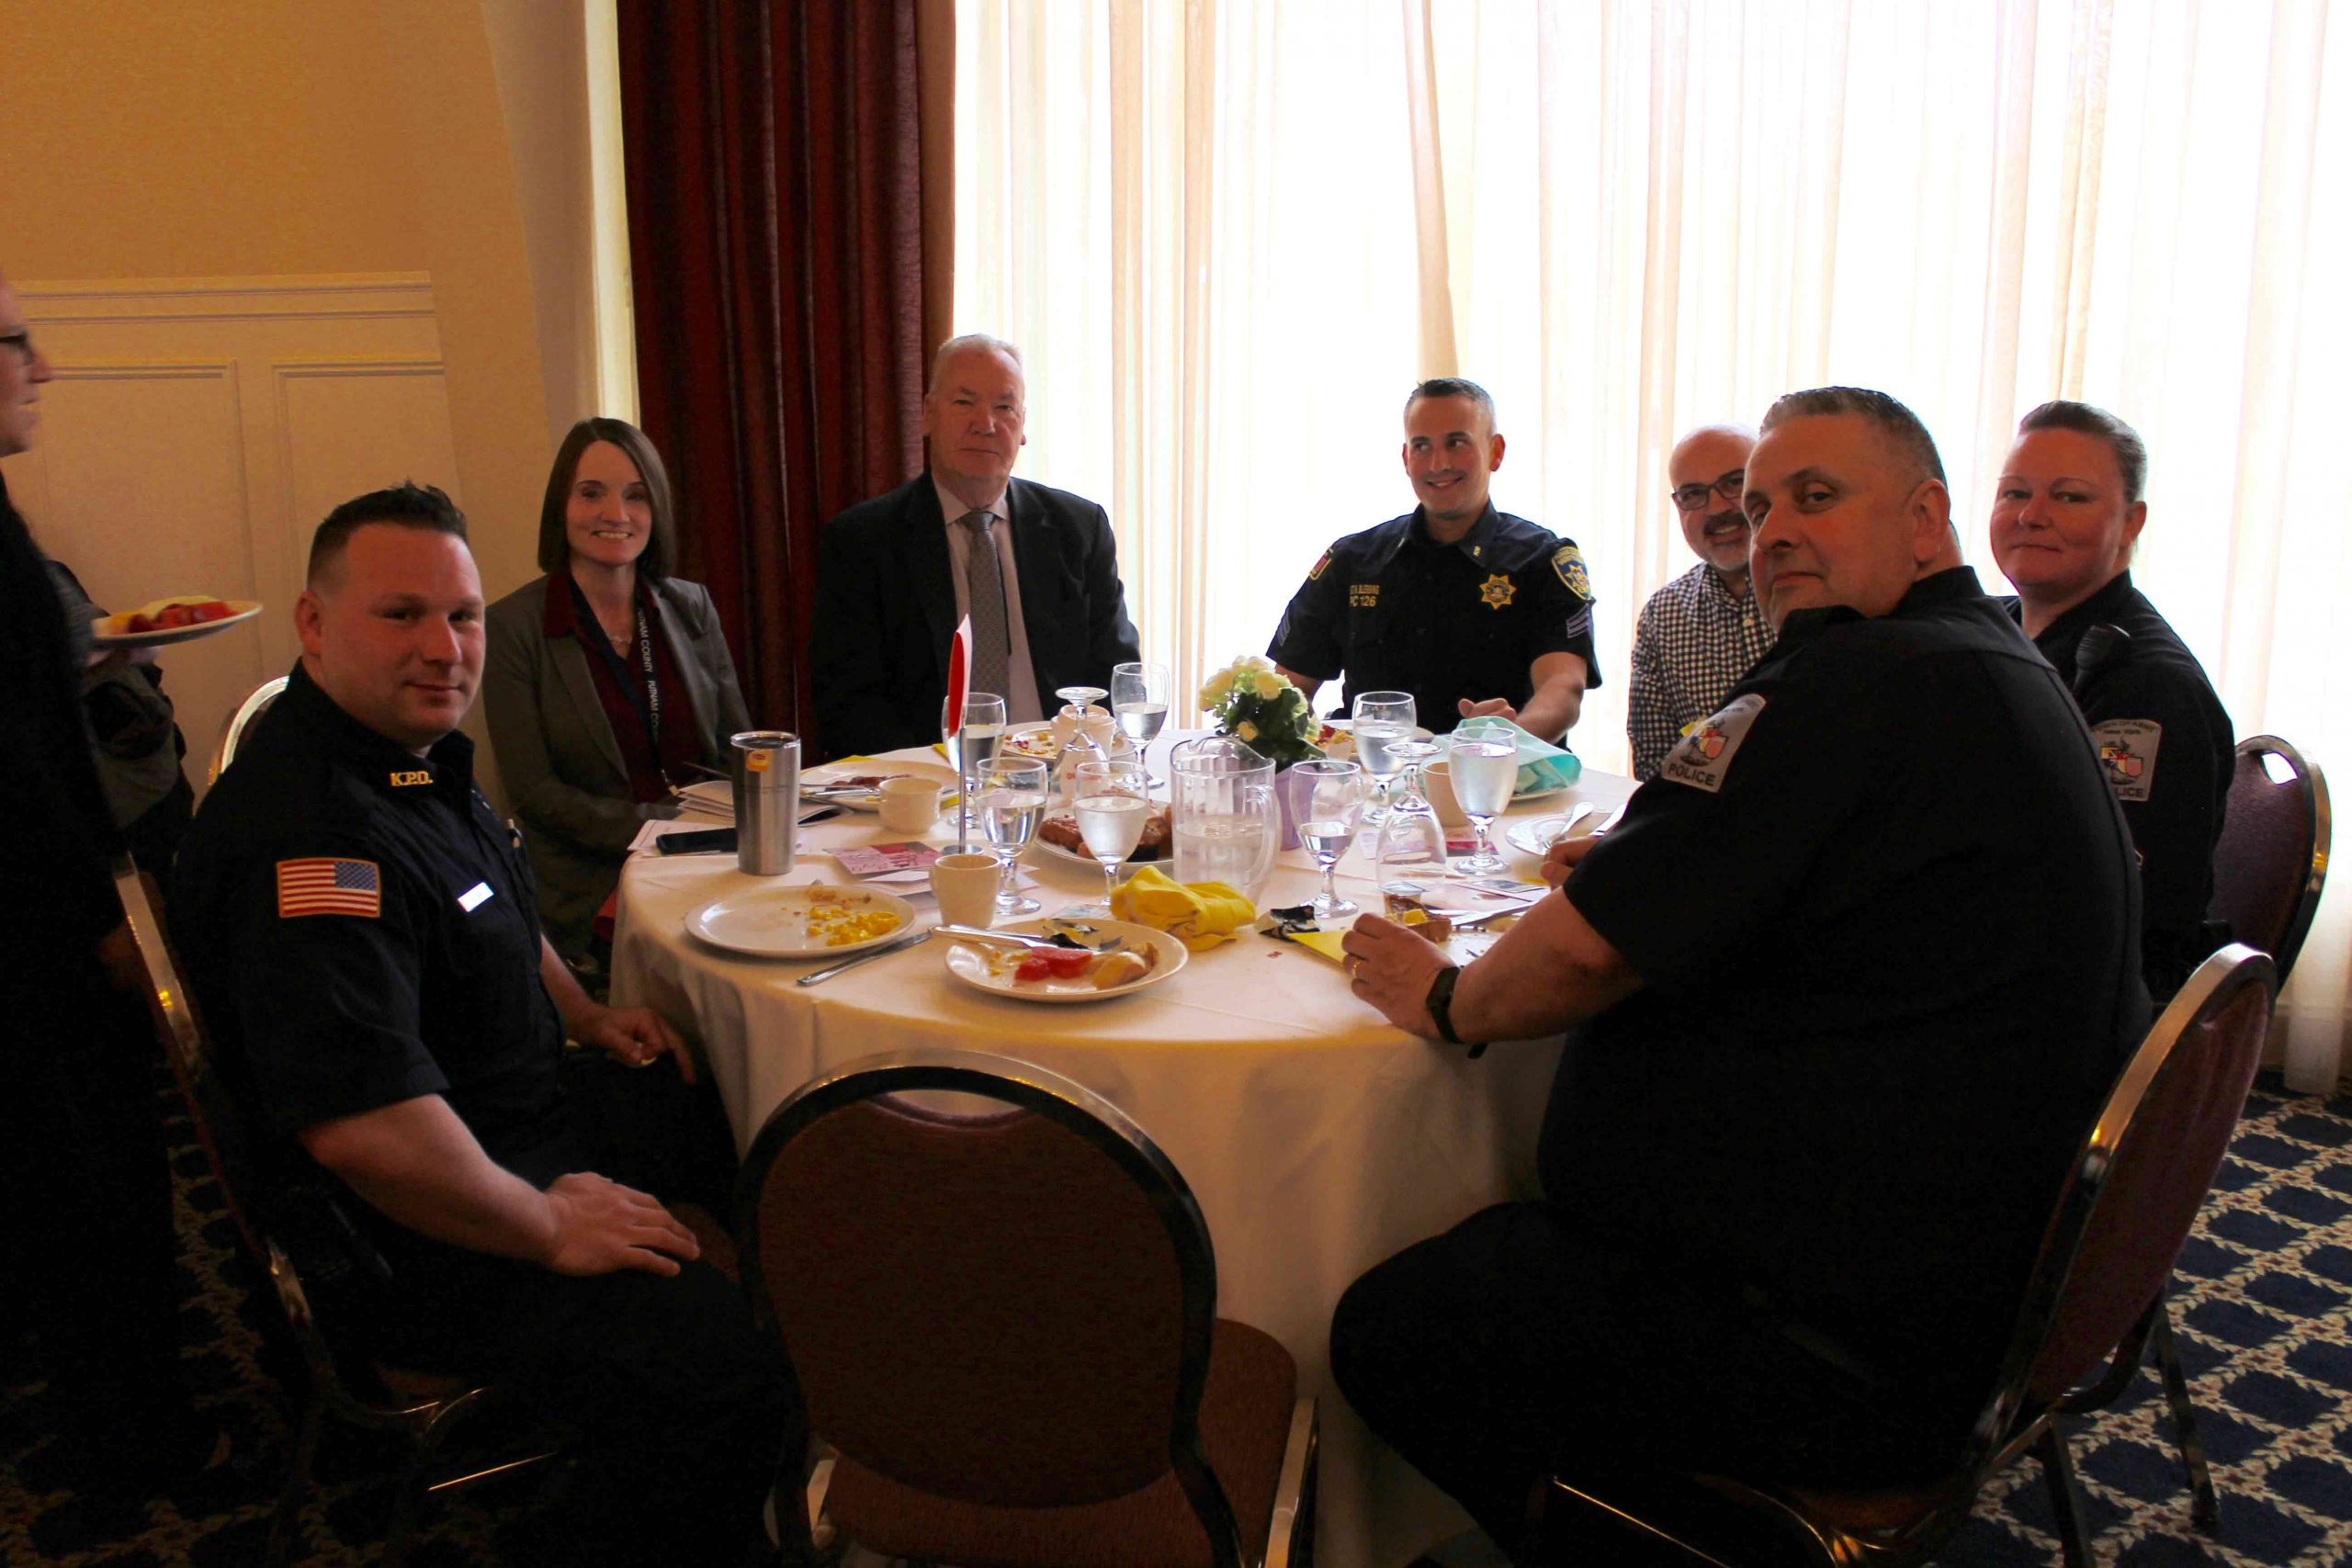 group of police officers sitting down on table smiling for the camera at MHA Recognition Breakfast